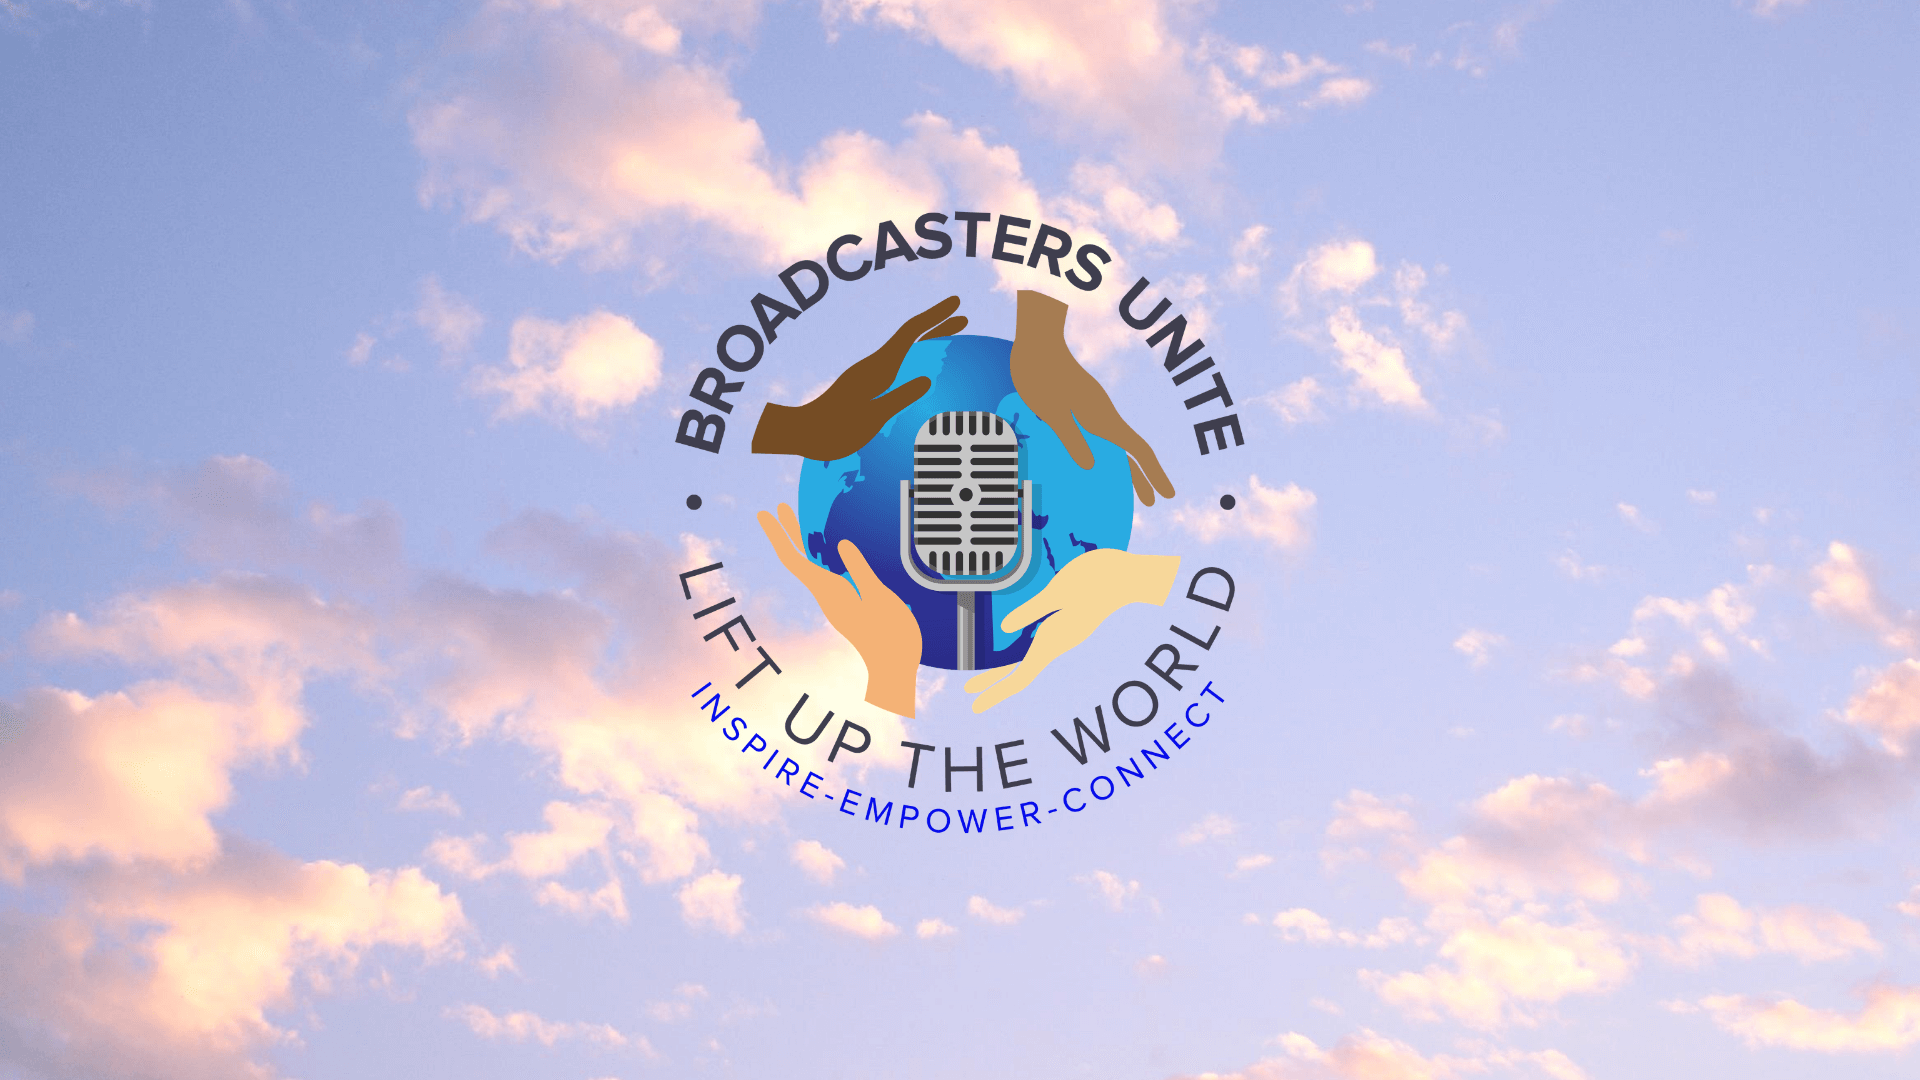 Broadcasters Unite: Lift Up The World Project Set To Air On Roku July 29th